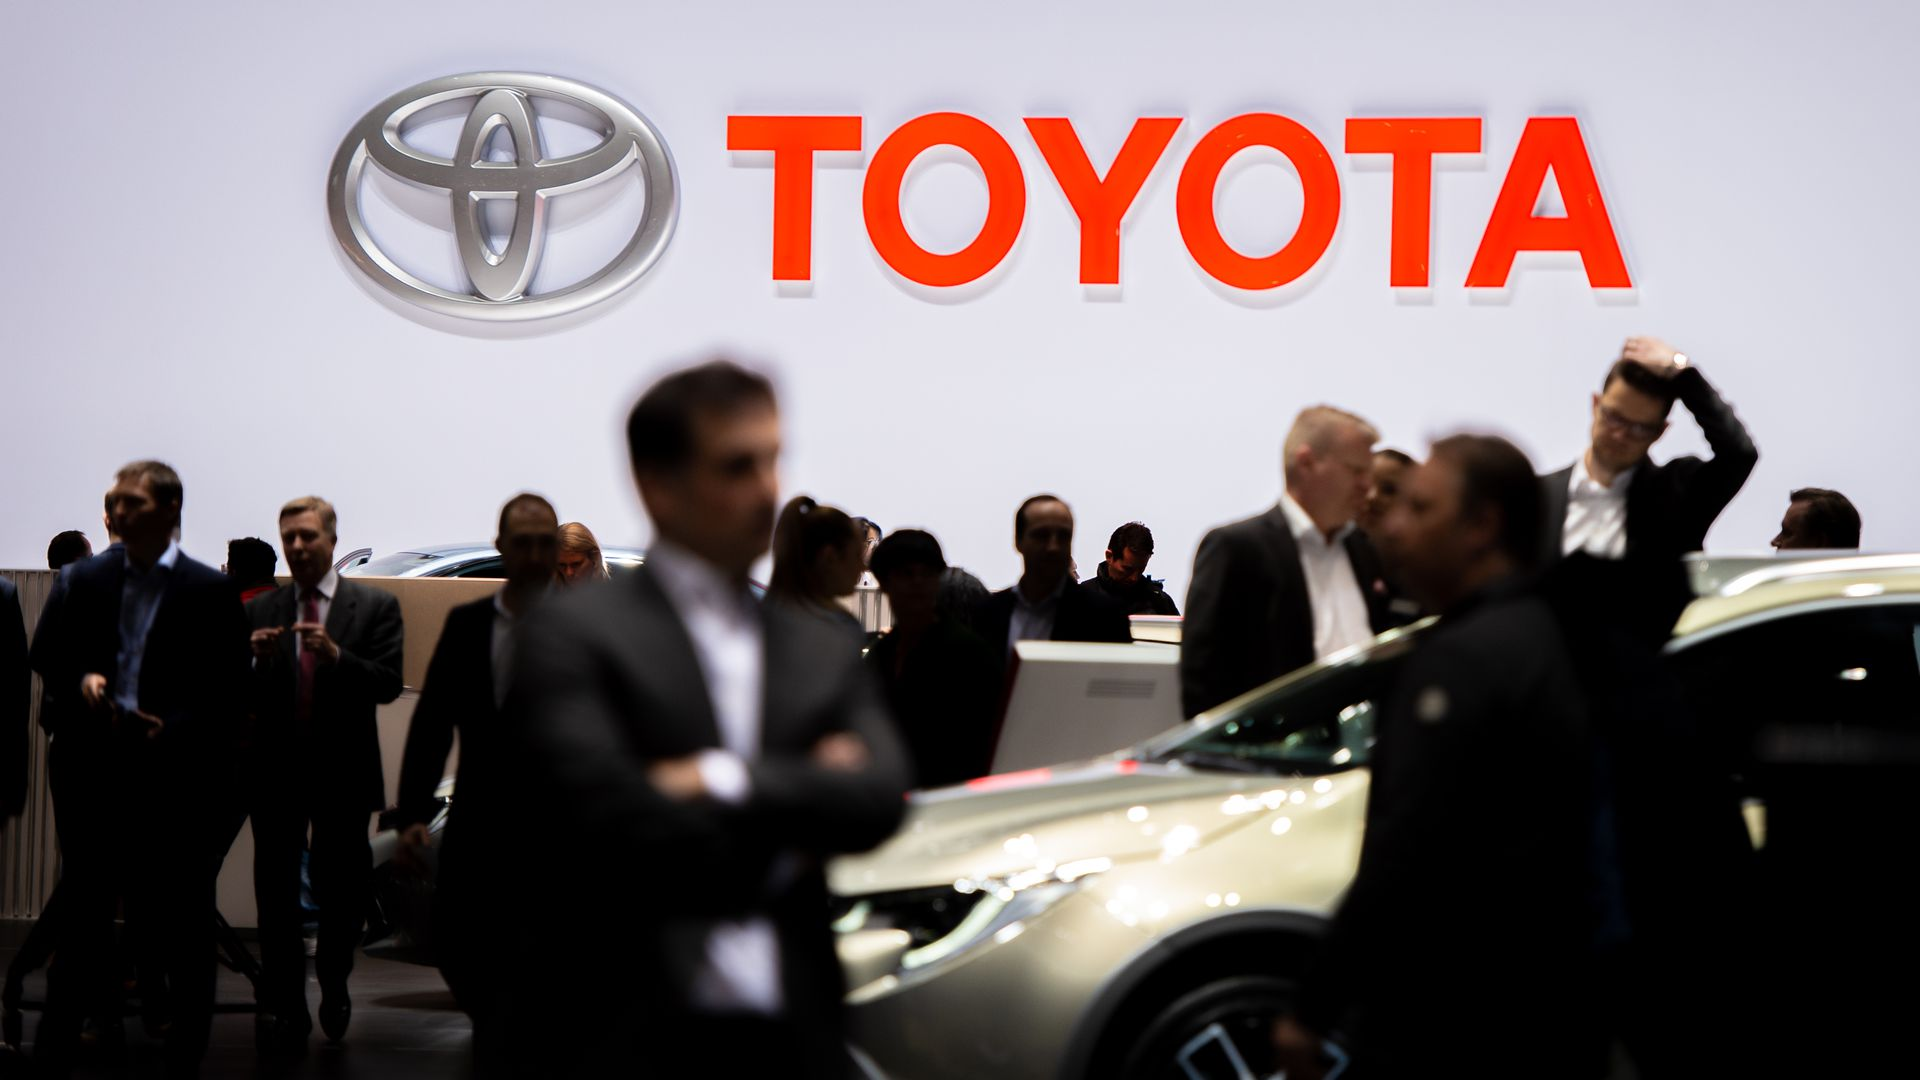 3.1 million customers were affected by Toyota's second data breach in 5 weeks